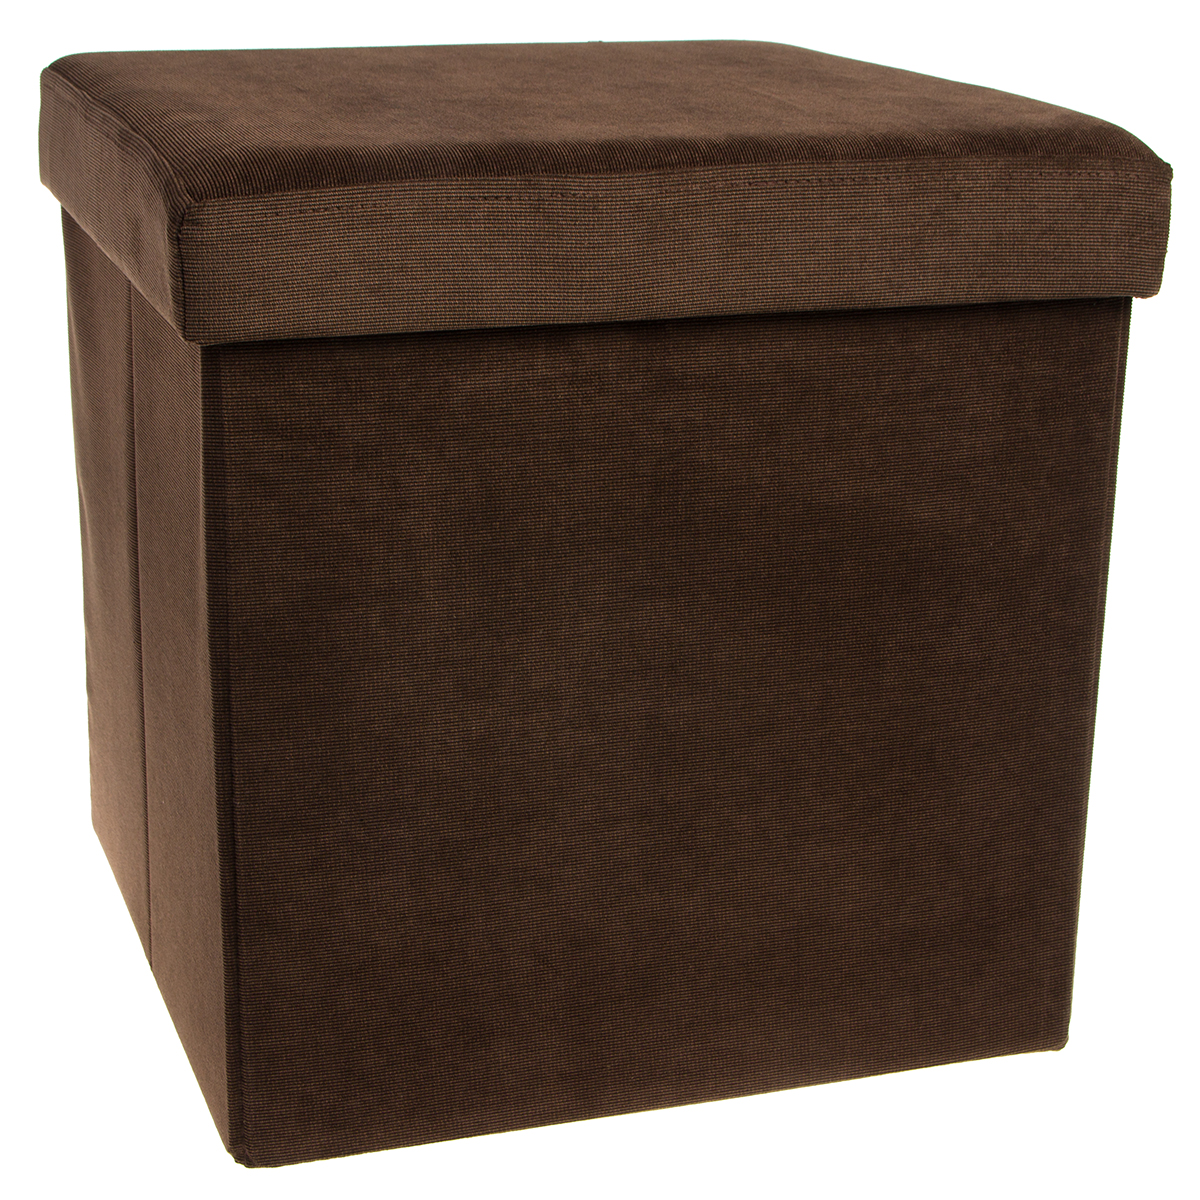 Storage-Ottoman-Cube-Folding-Fabric-Square-Foot-Rest-